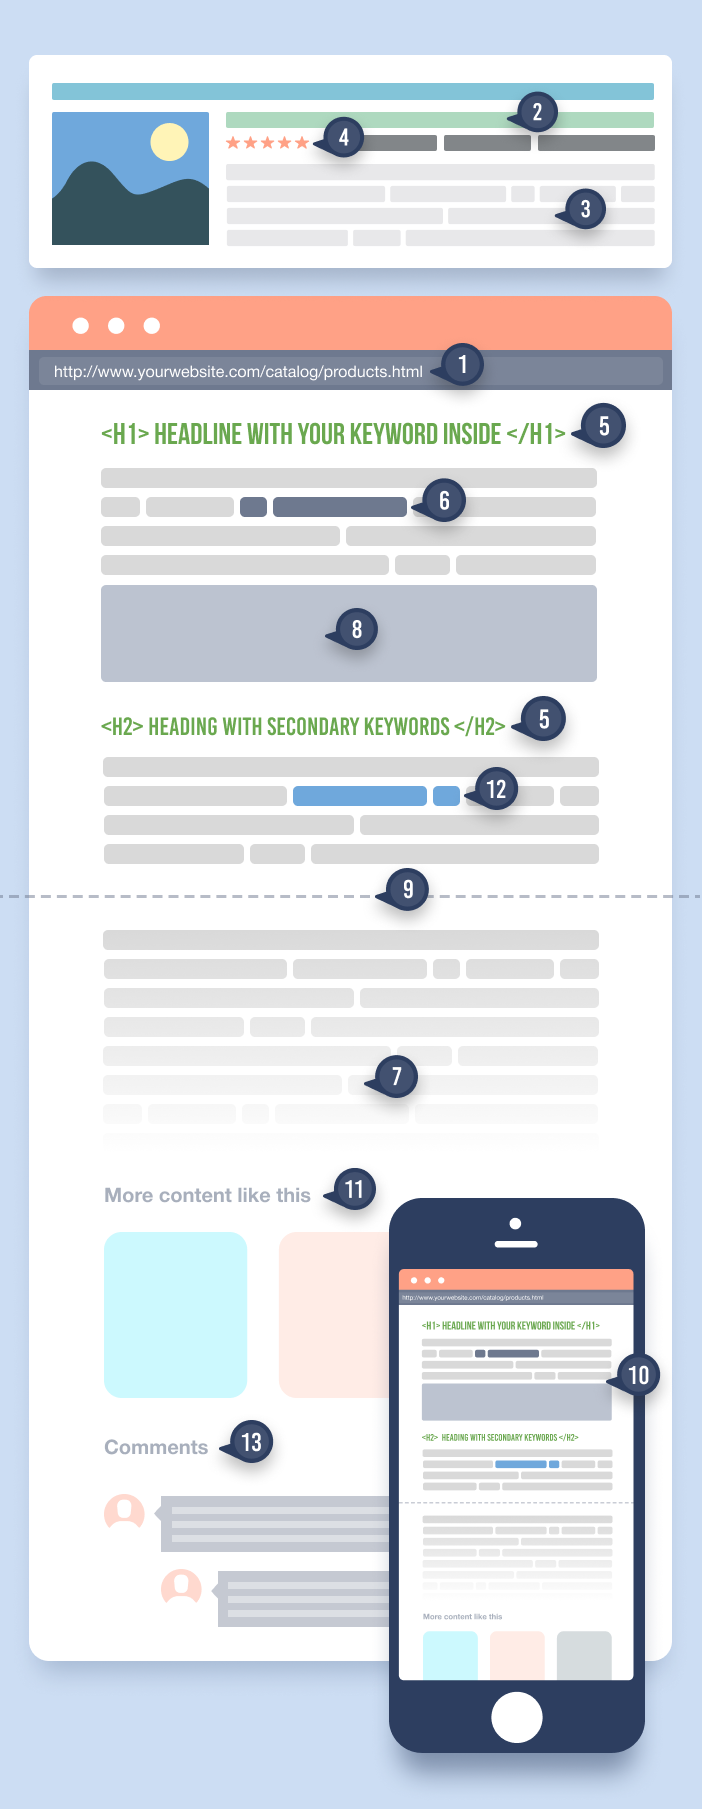 Anatomy of a perfectly optimized landing page